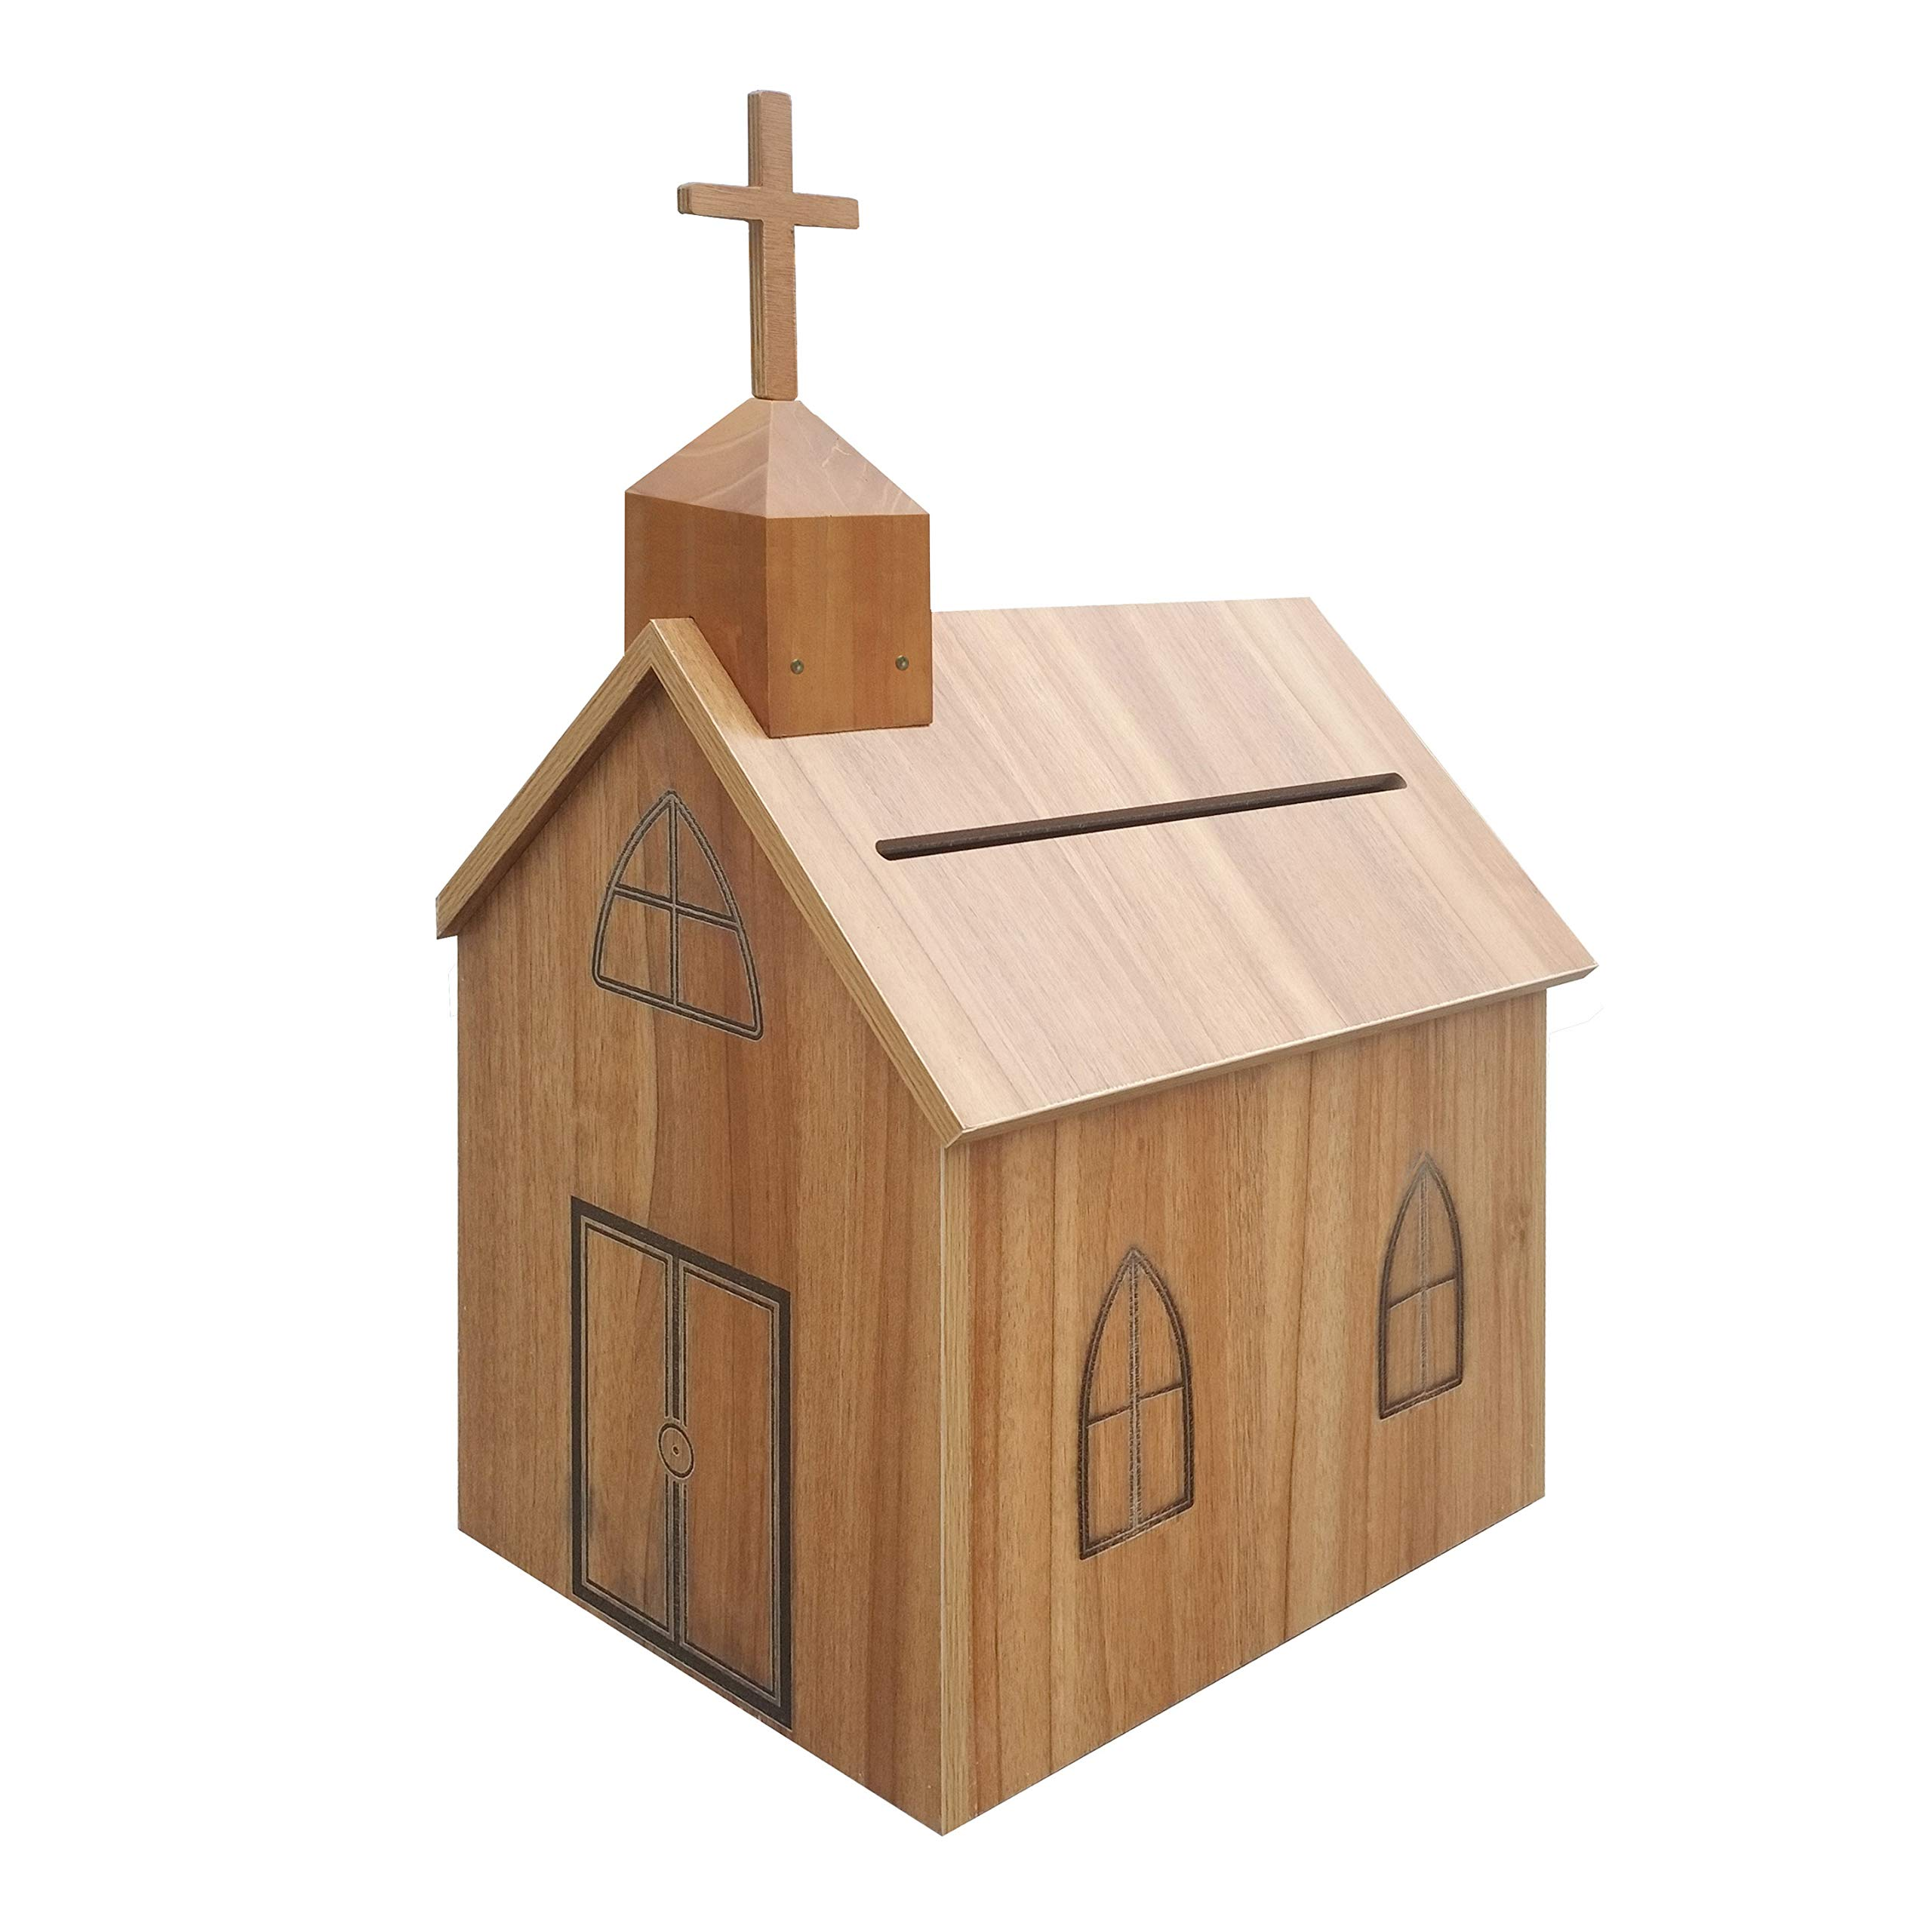 FixtureDisplays Church Steeple Box Collection Box Tithing Donation Box Fundraising Charity Box with Cross 21397-C-FBA Fulfilment by Amazon by FixtureDisplays